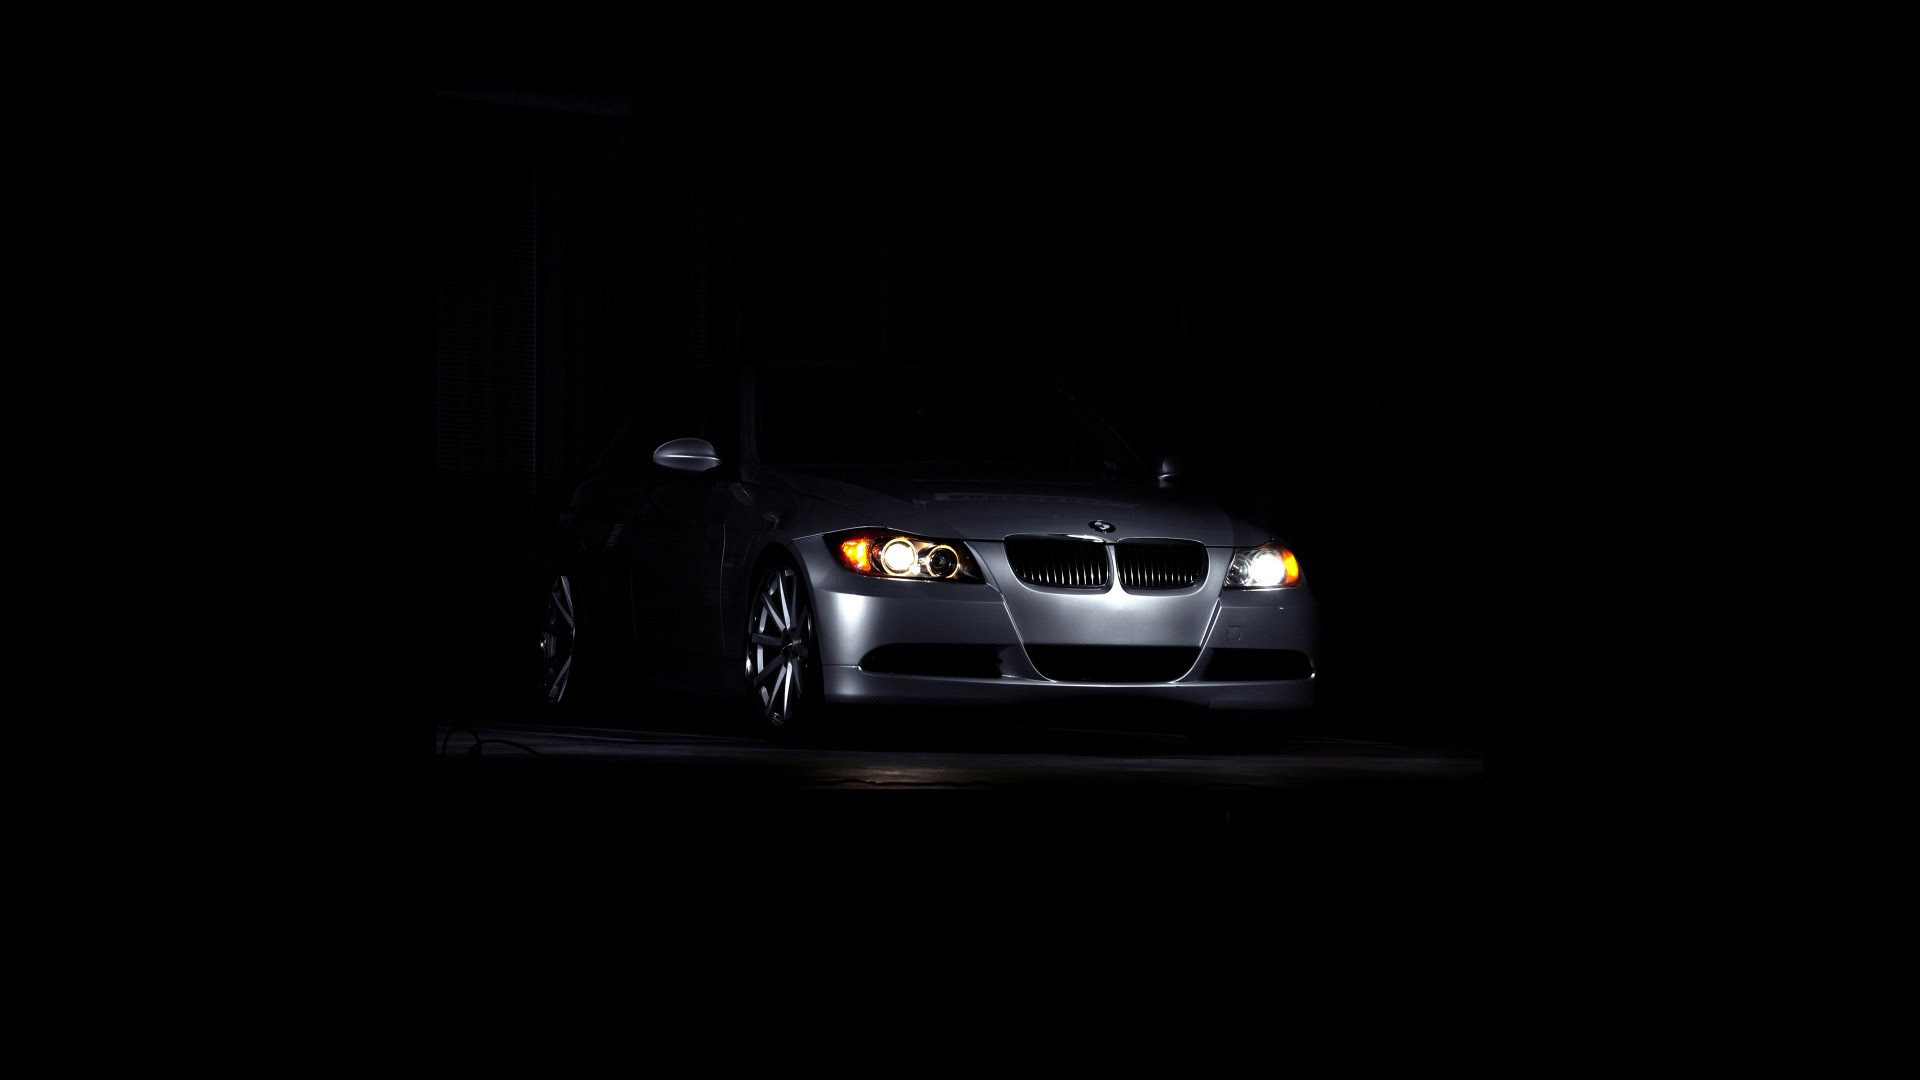 Iphone Muscle Car Wallpapers Awesome Bmw 5 Series Wallpaper 43568 1920x1080 Px